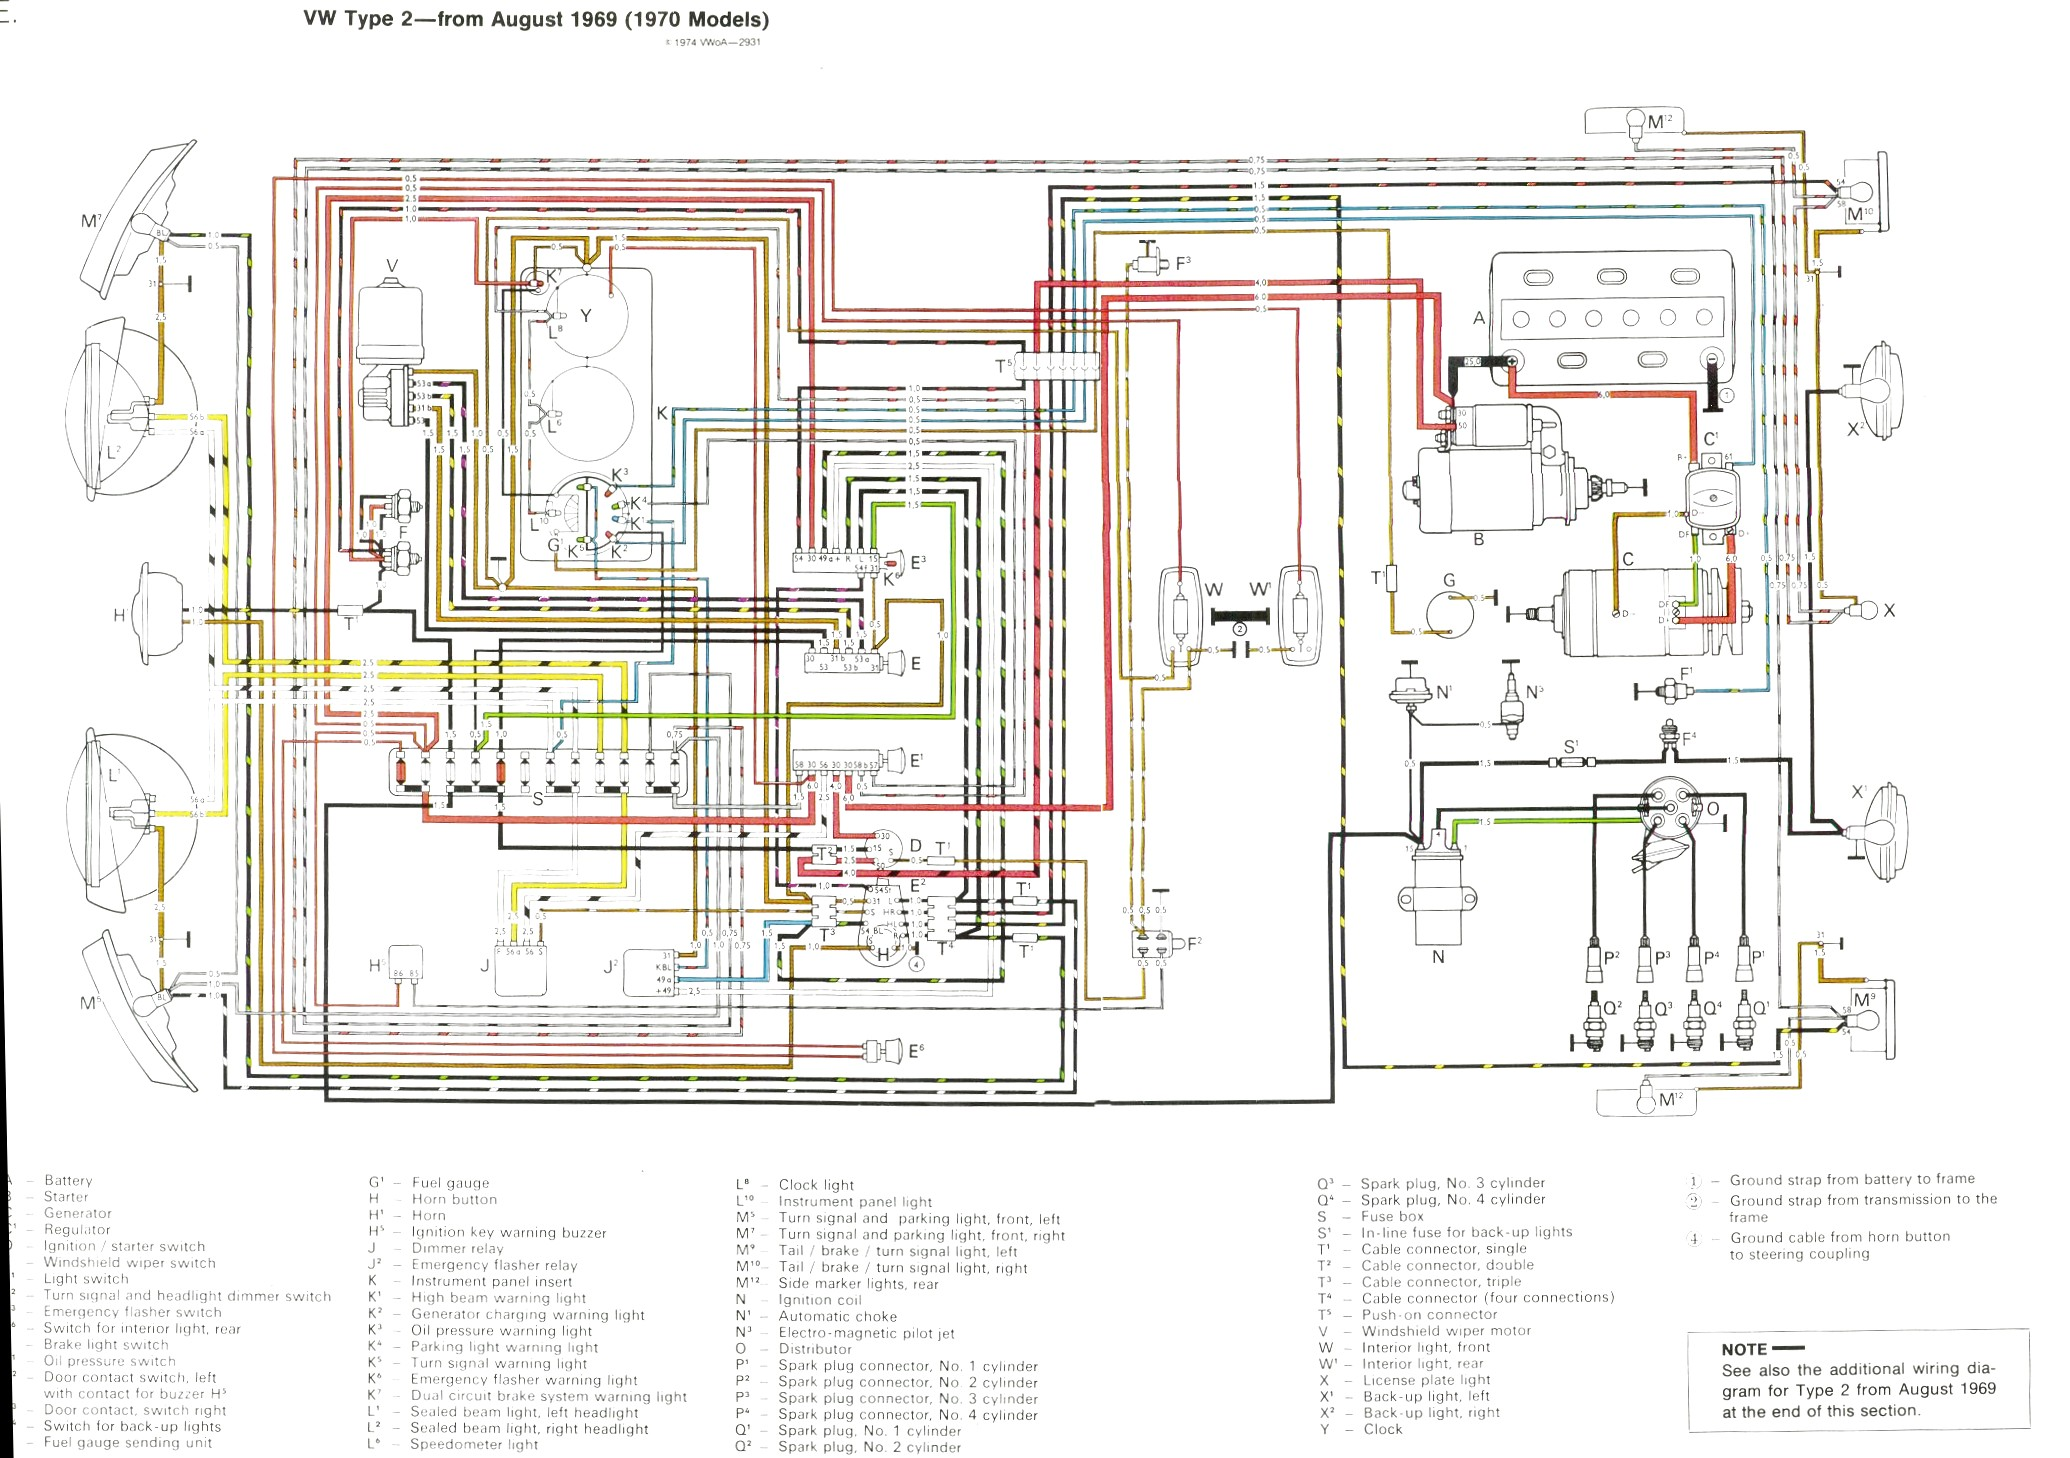 bus 69 70 baywindow fusebox layout 1971 vw bus wiring diagram at aneh.co